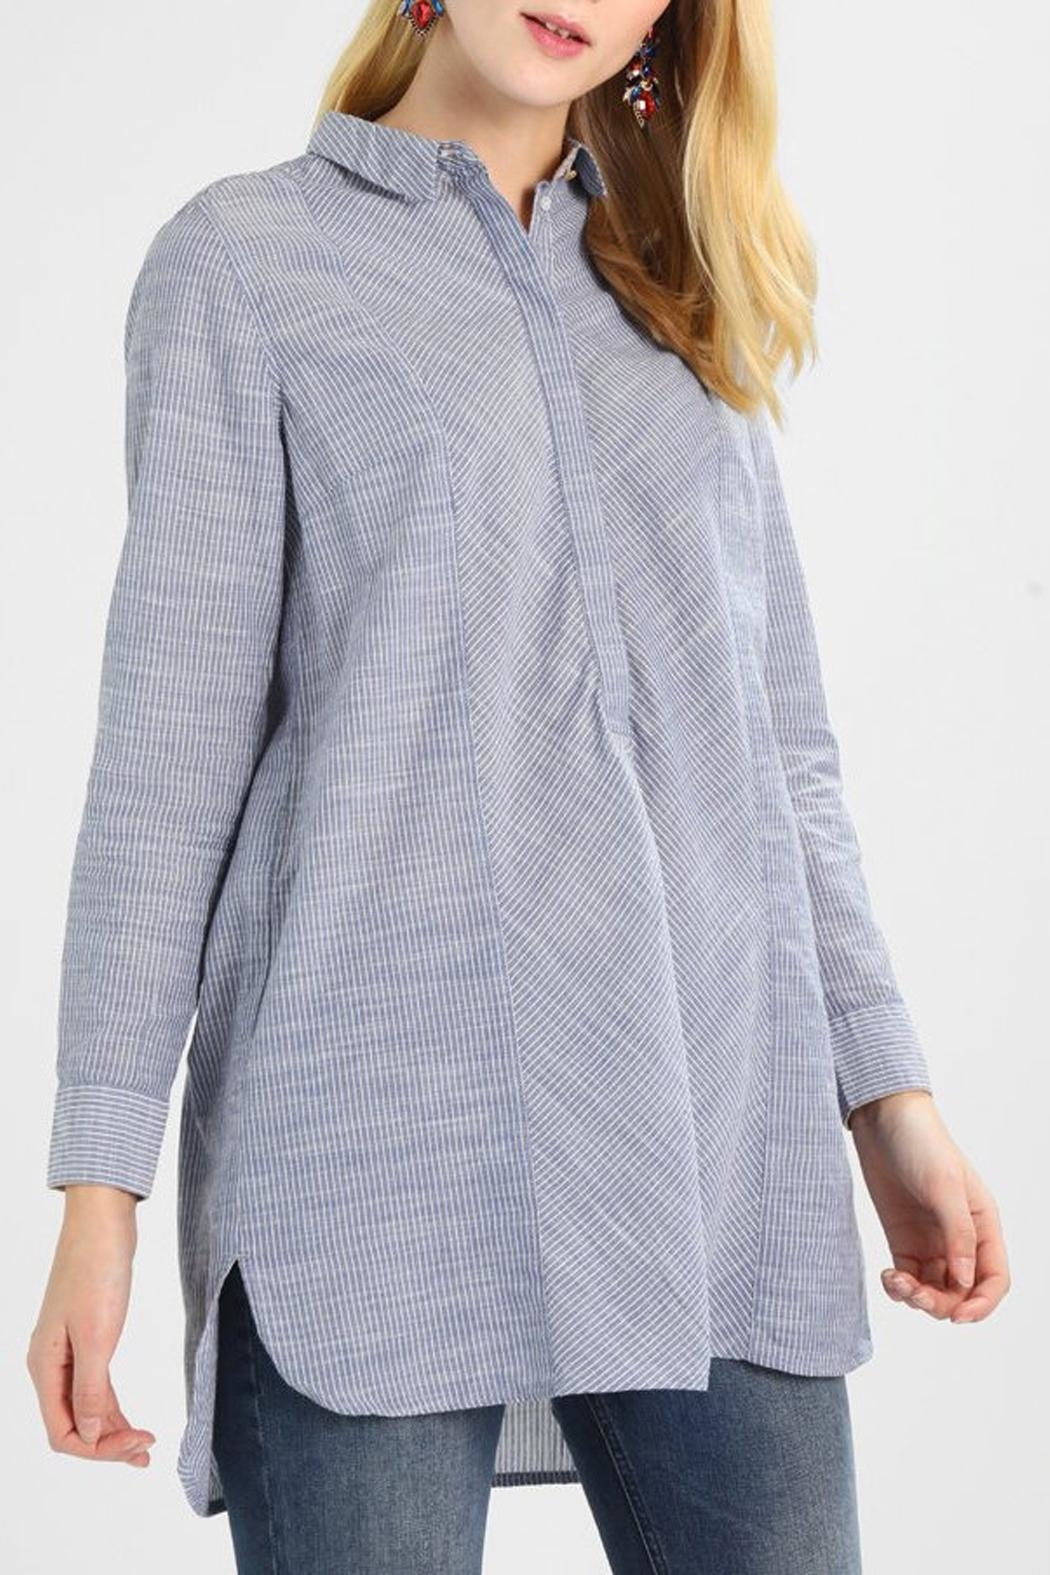 Noa Noa Striped Long Blouse - Main Image